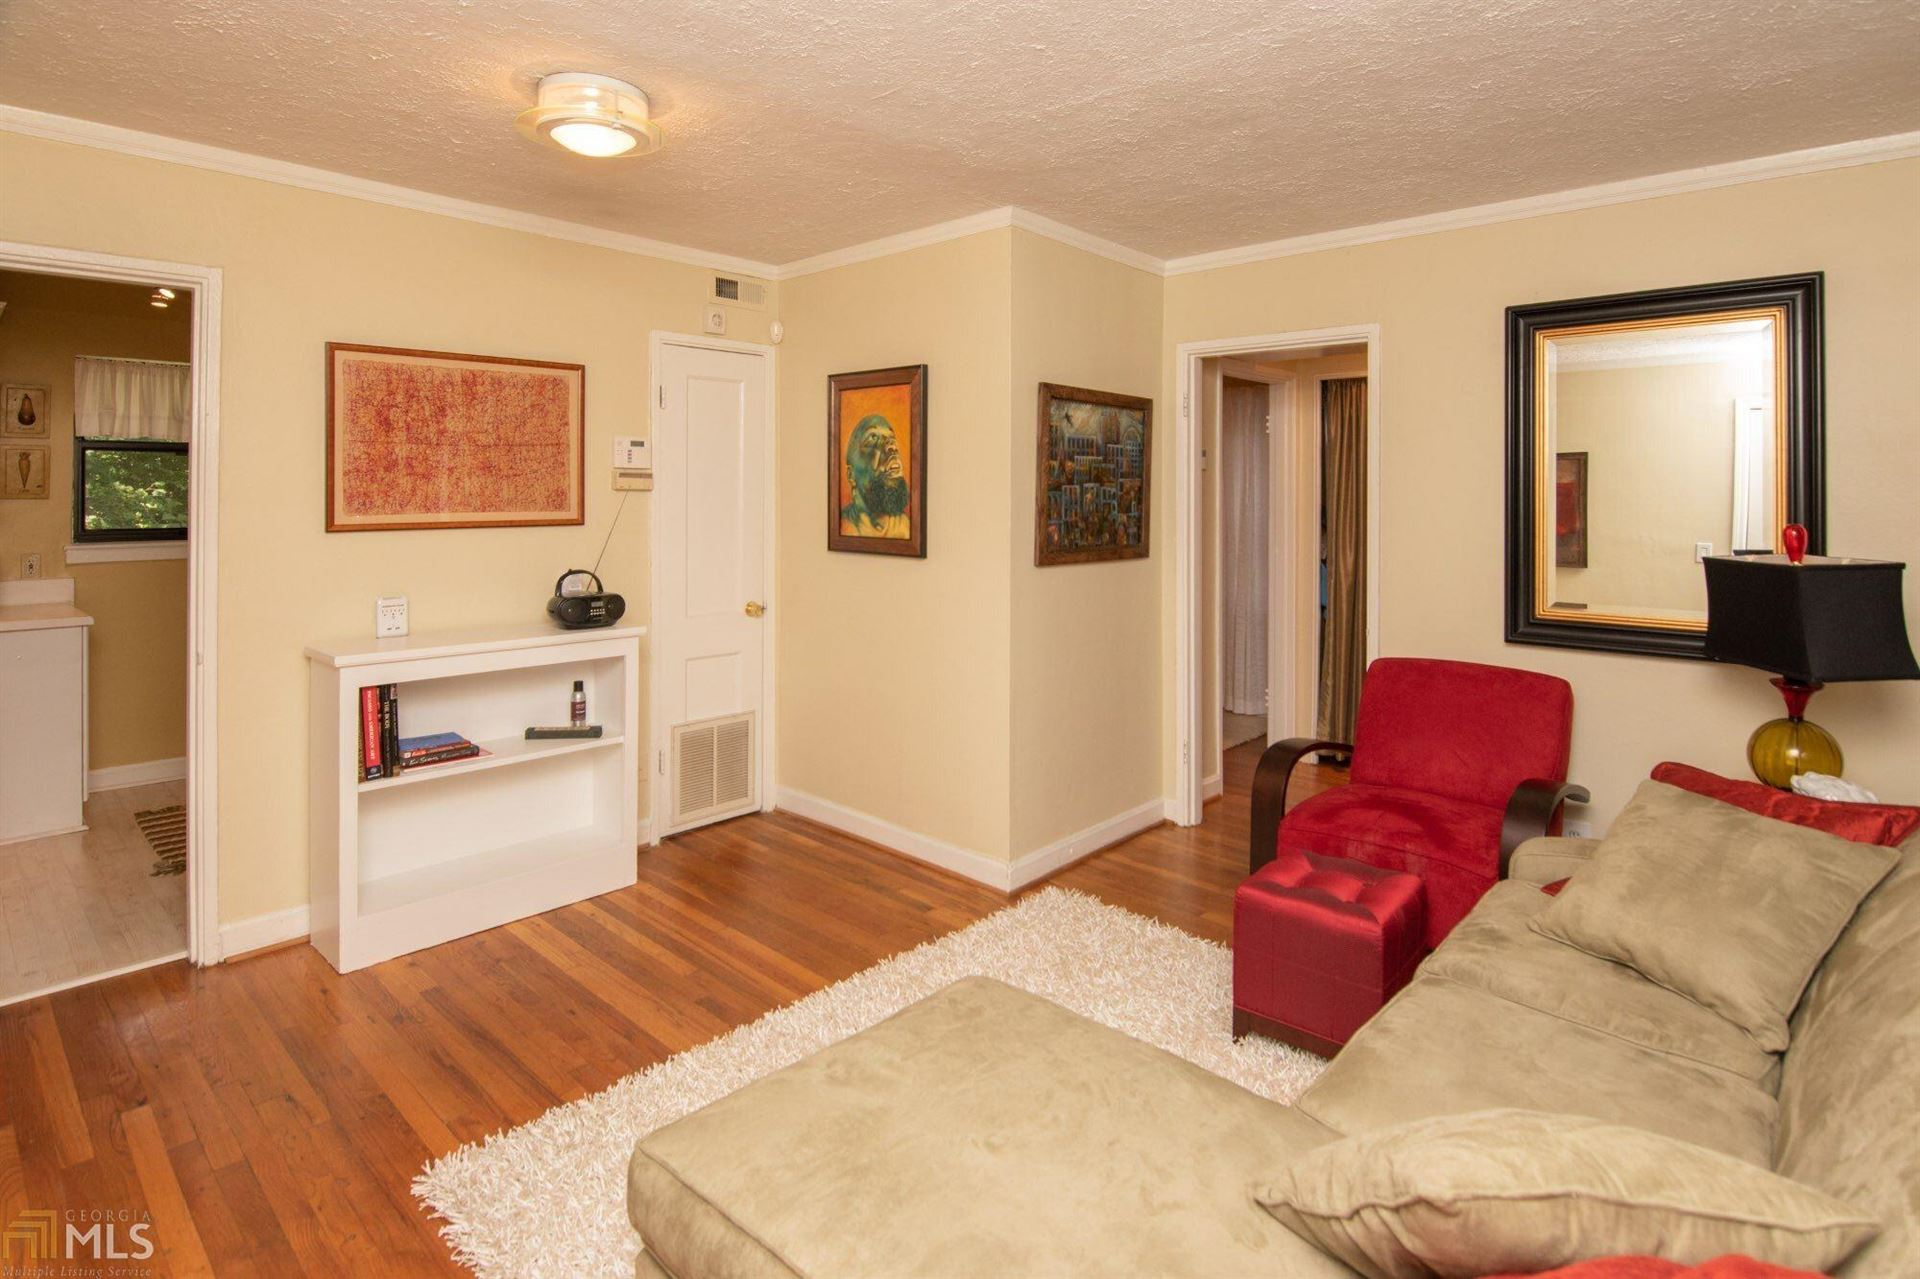 314 3Rd St, Atlanta, GA 30308 - MLS#: 8830706